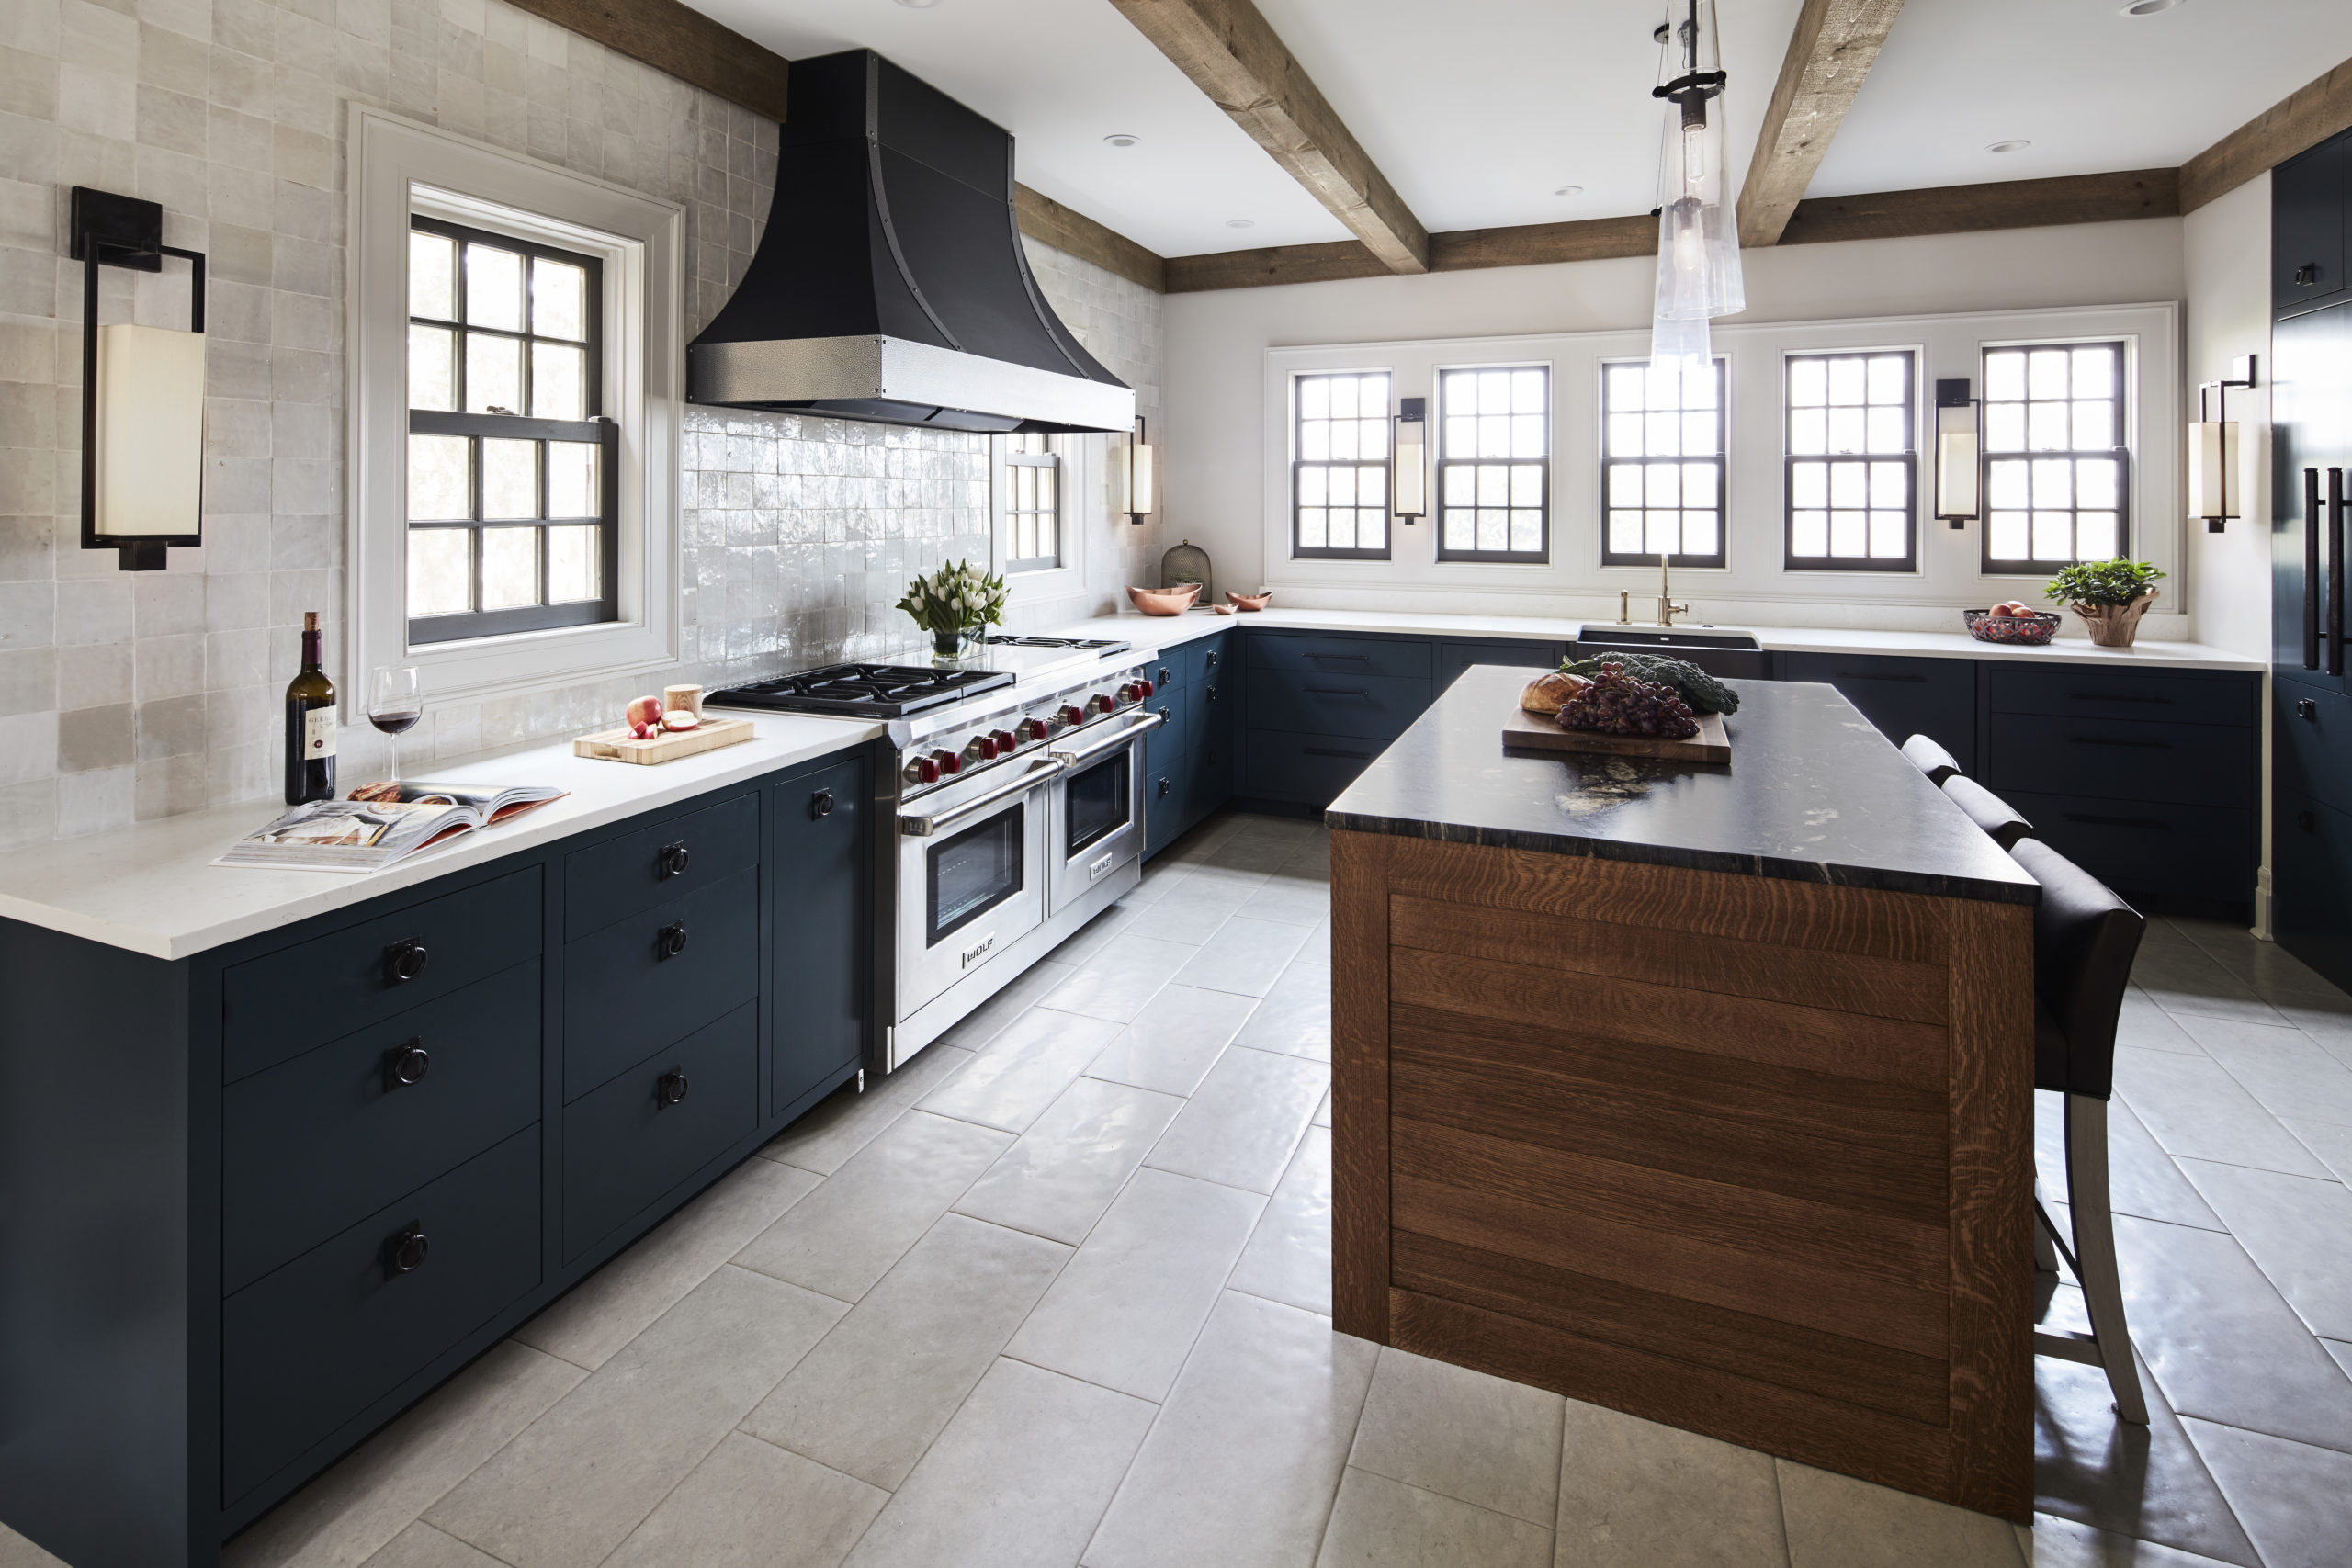 tudor kitchen design with exposed beams